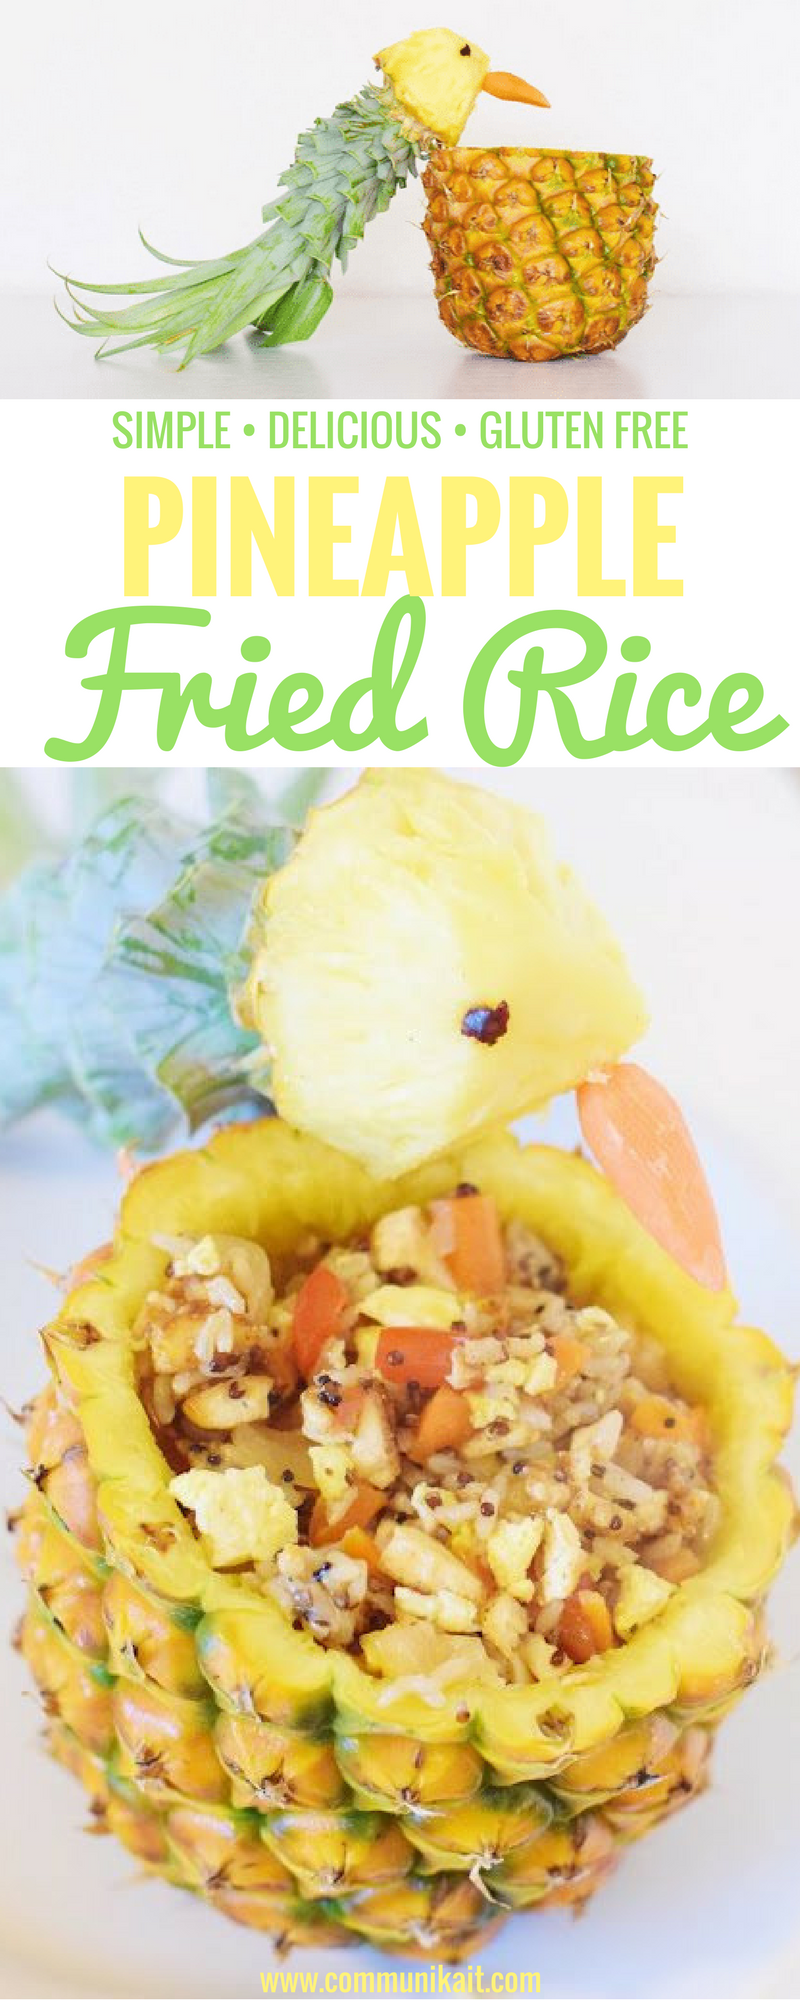 Best Ever Pineapple Fried Rice - Gluten Free Fried Rice - Vegetarian Fried Rice - Easy Pineapple Fried Rice - Recipe For Easy Friend Rice - Food Presentation Ideas - Communikait by Kait Hanson